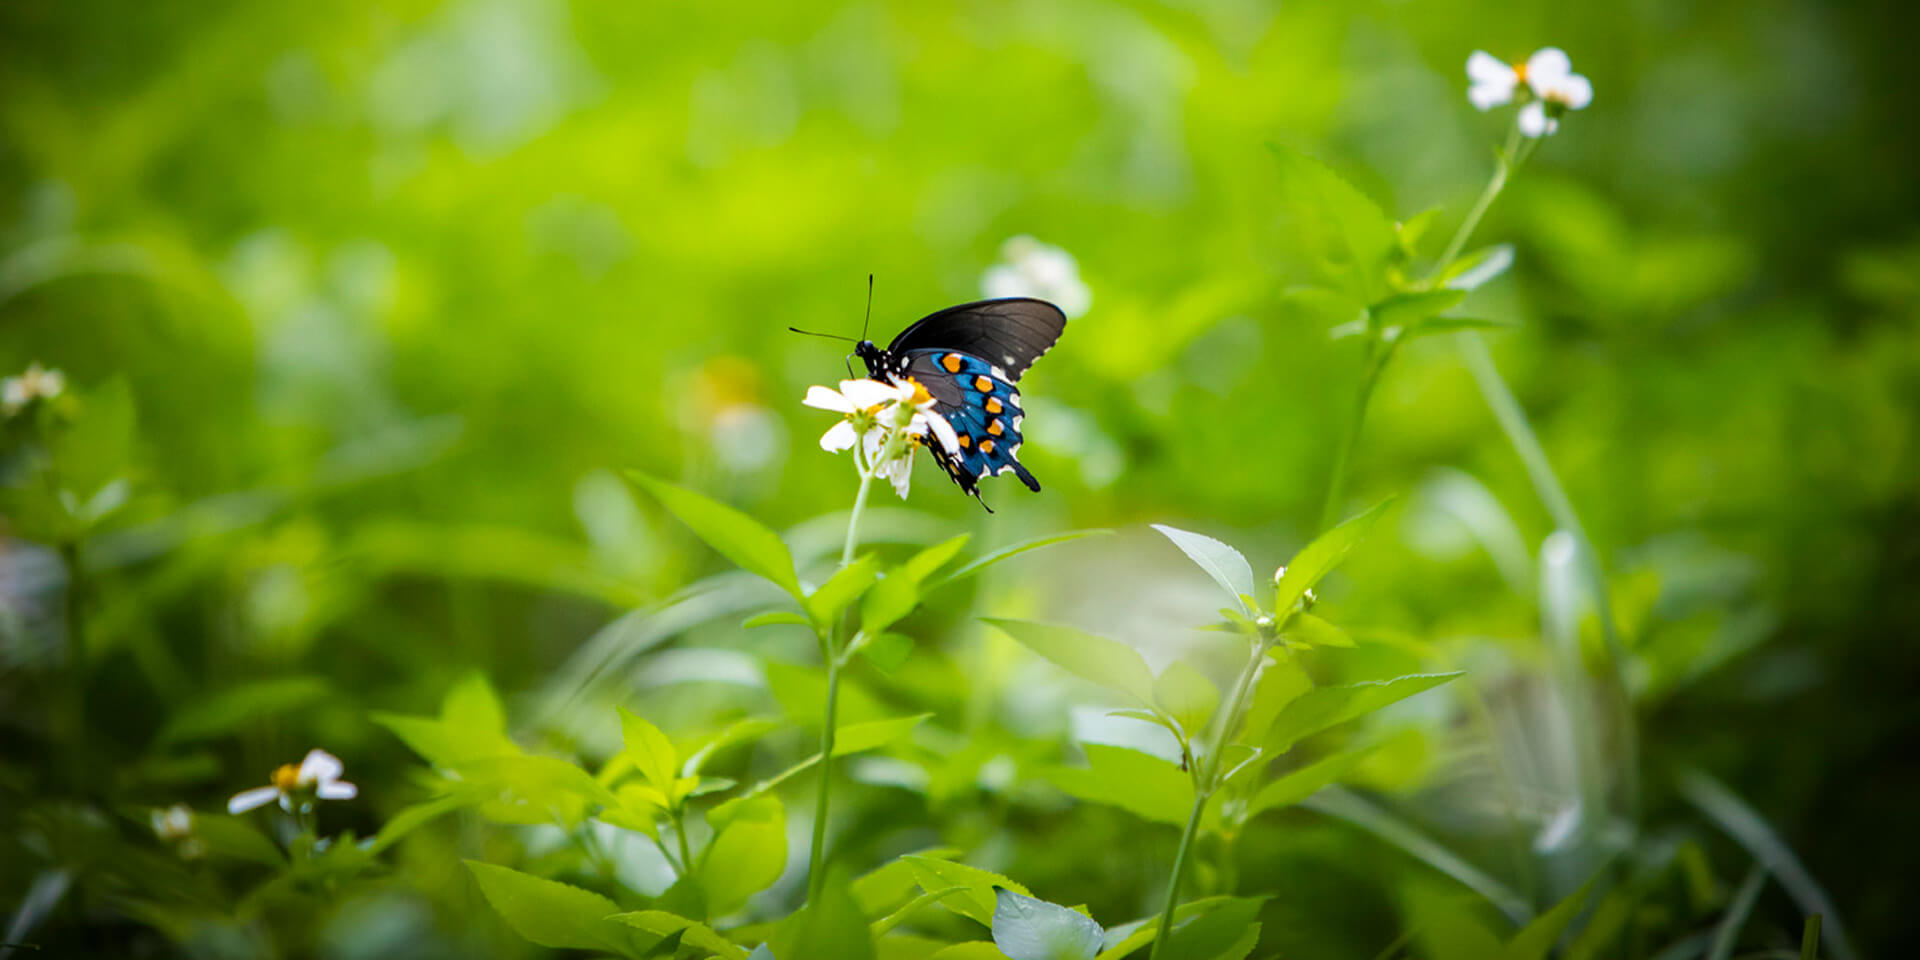 Image of a butterfly that's sitting atop a wildflower with greenery behind.